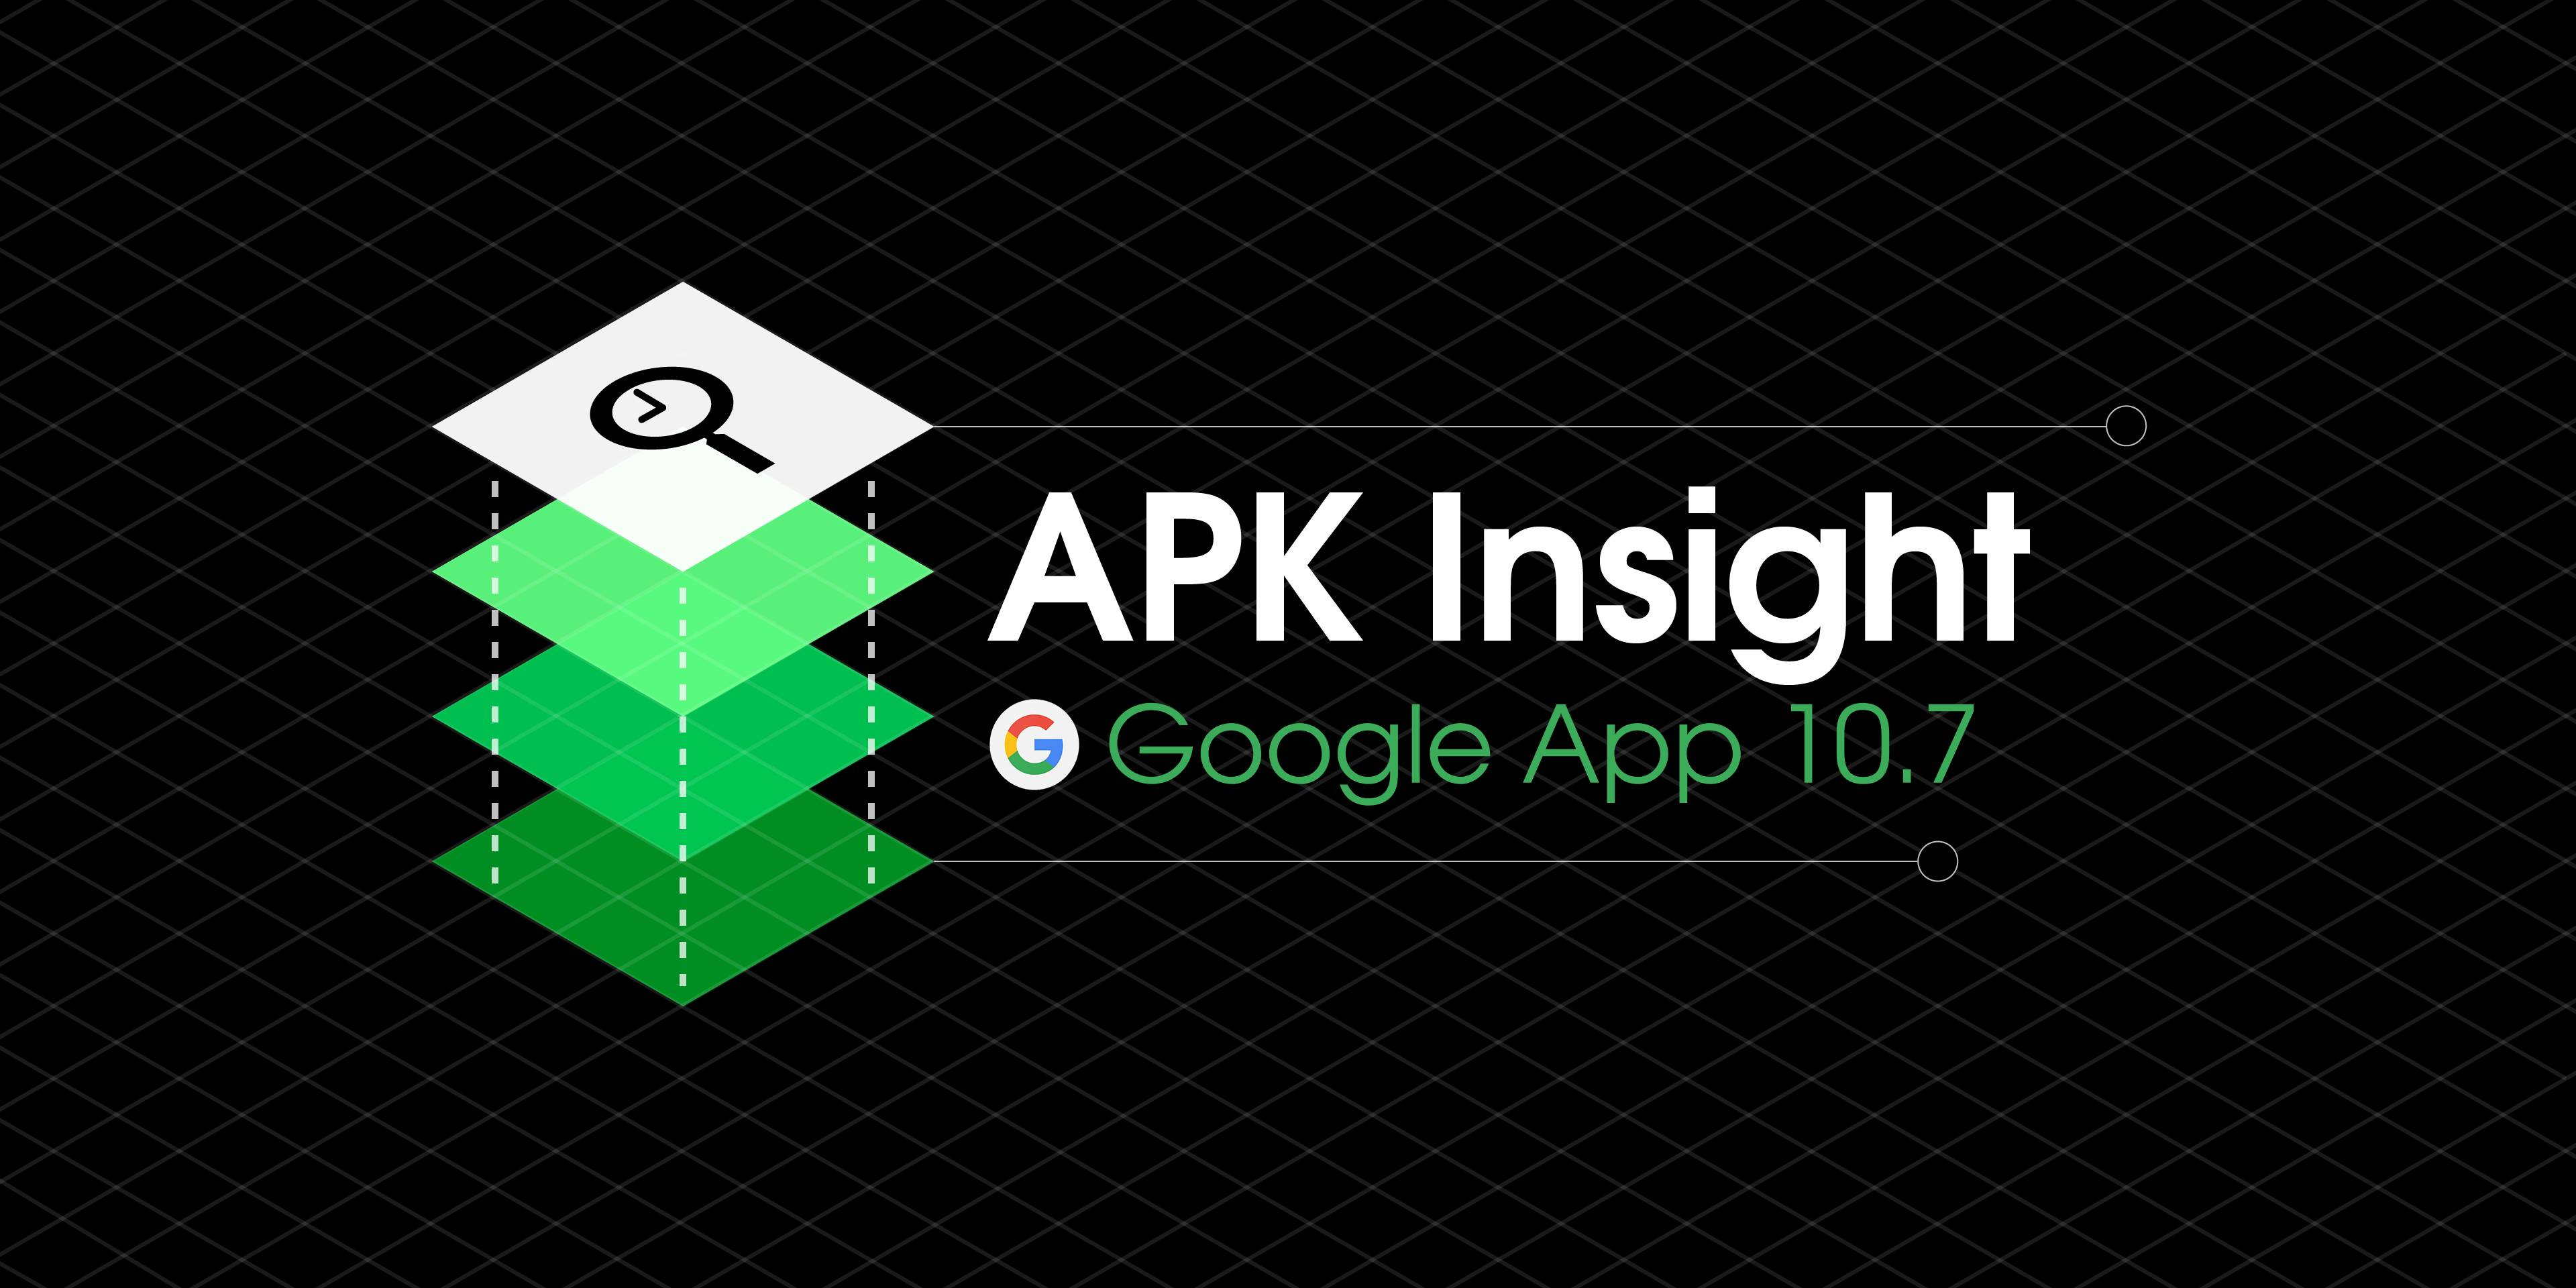 Google app 10 7 adds whimsical Face Match animations [APK Insight